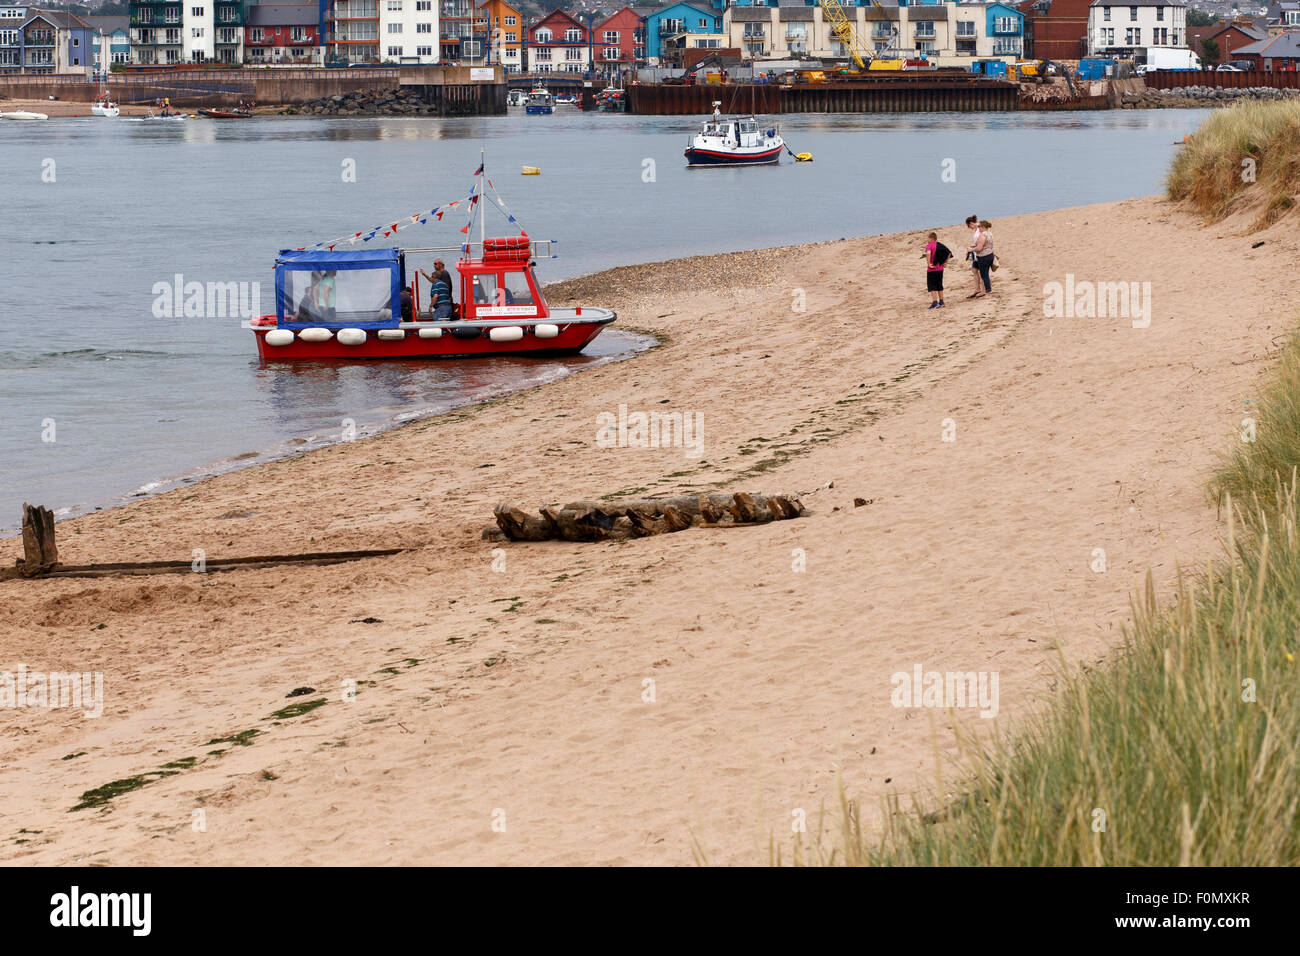 Passengers alighting from 'water taxi' at Dawlish Warren. Boat picking up passengers for return trip to - Stock Image